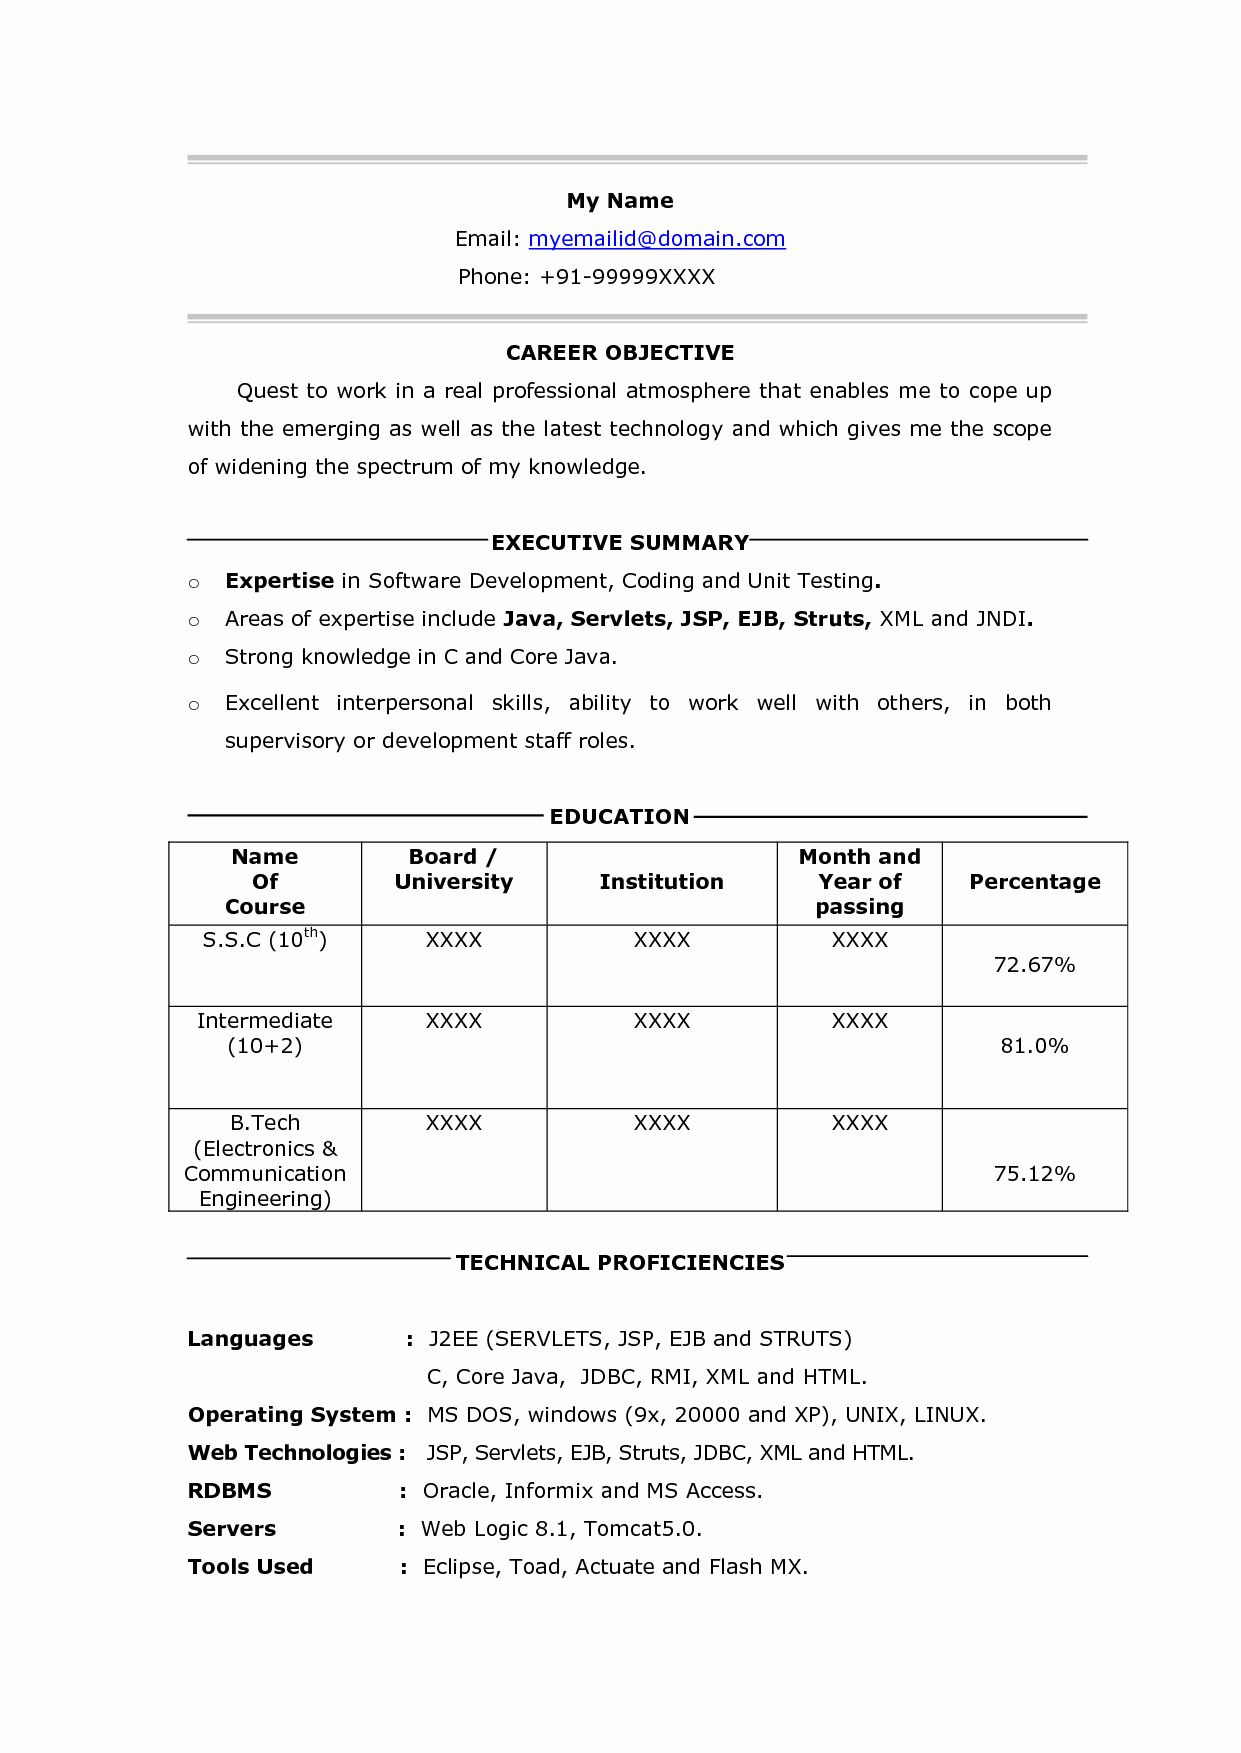 resume format for testing freshers best examples software fresher temp functional hybrid Resume Software Testing Fresher Resume Download